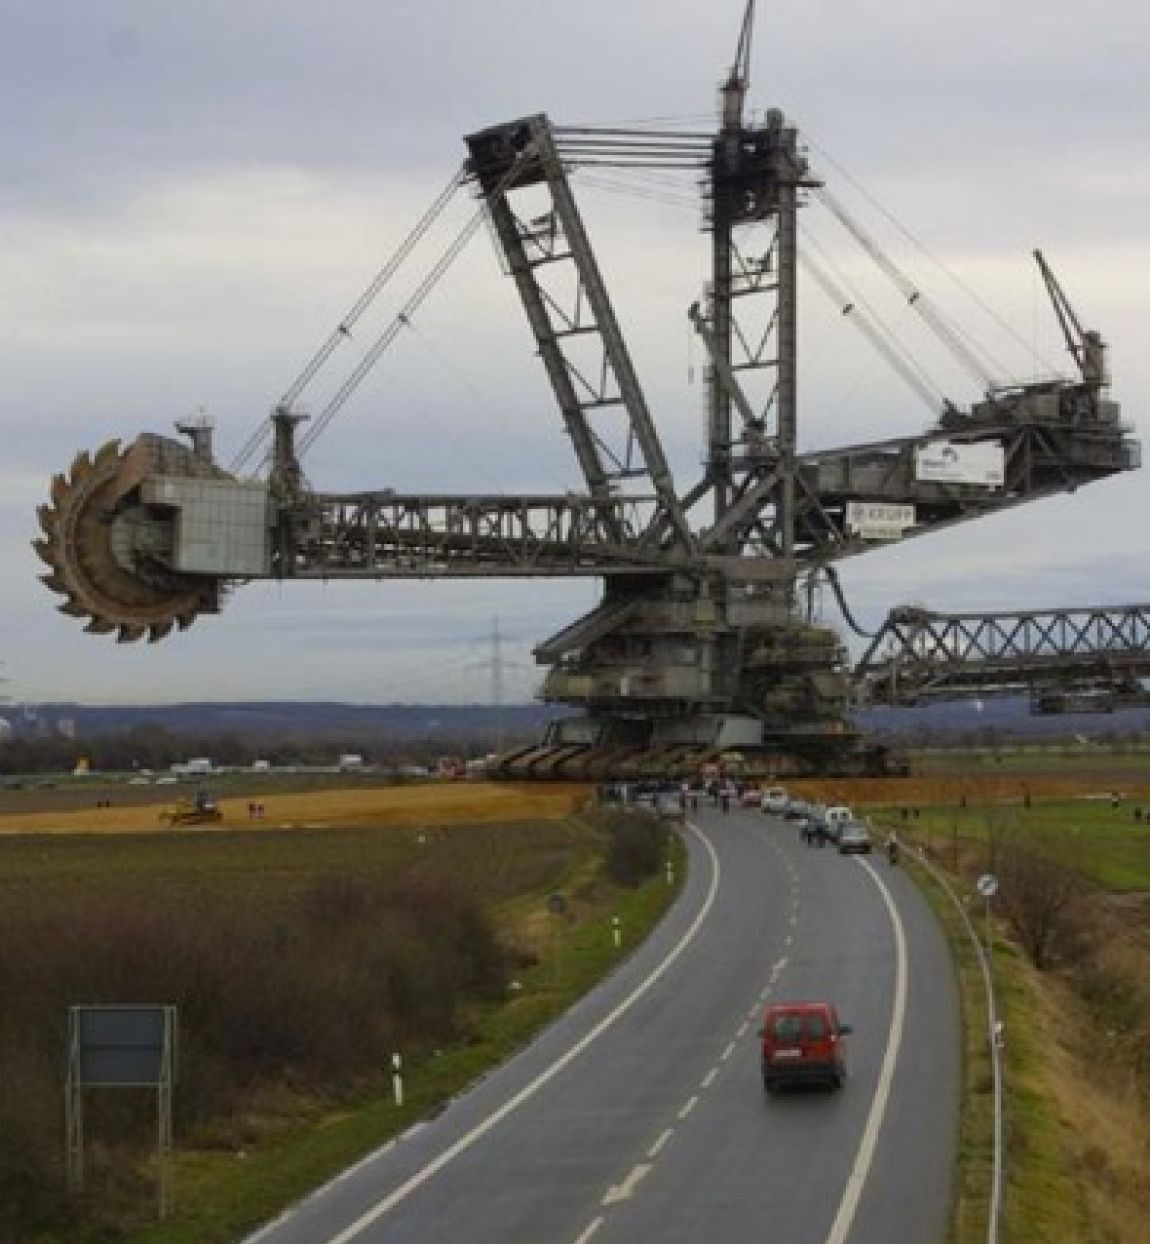 The Bagger 288 A Ginormous Excavator That Is Technically